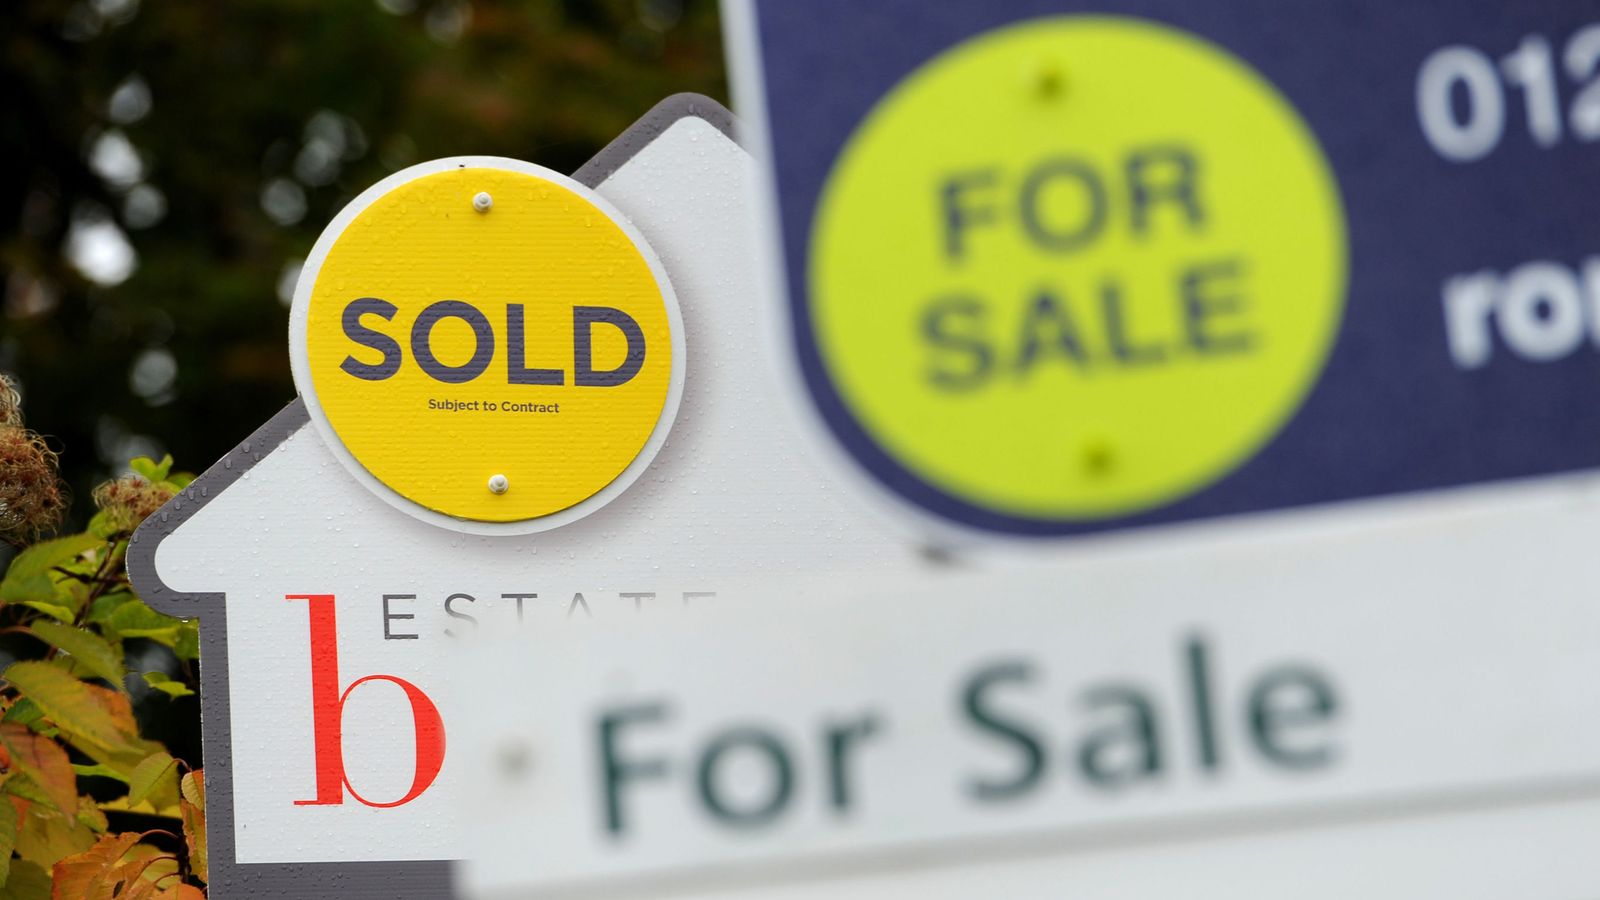 Mortgage payment holiday extended amid 'worst house price slump for 11 years'